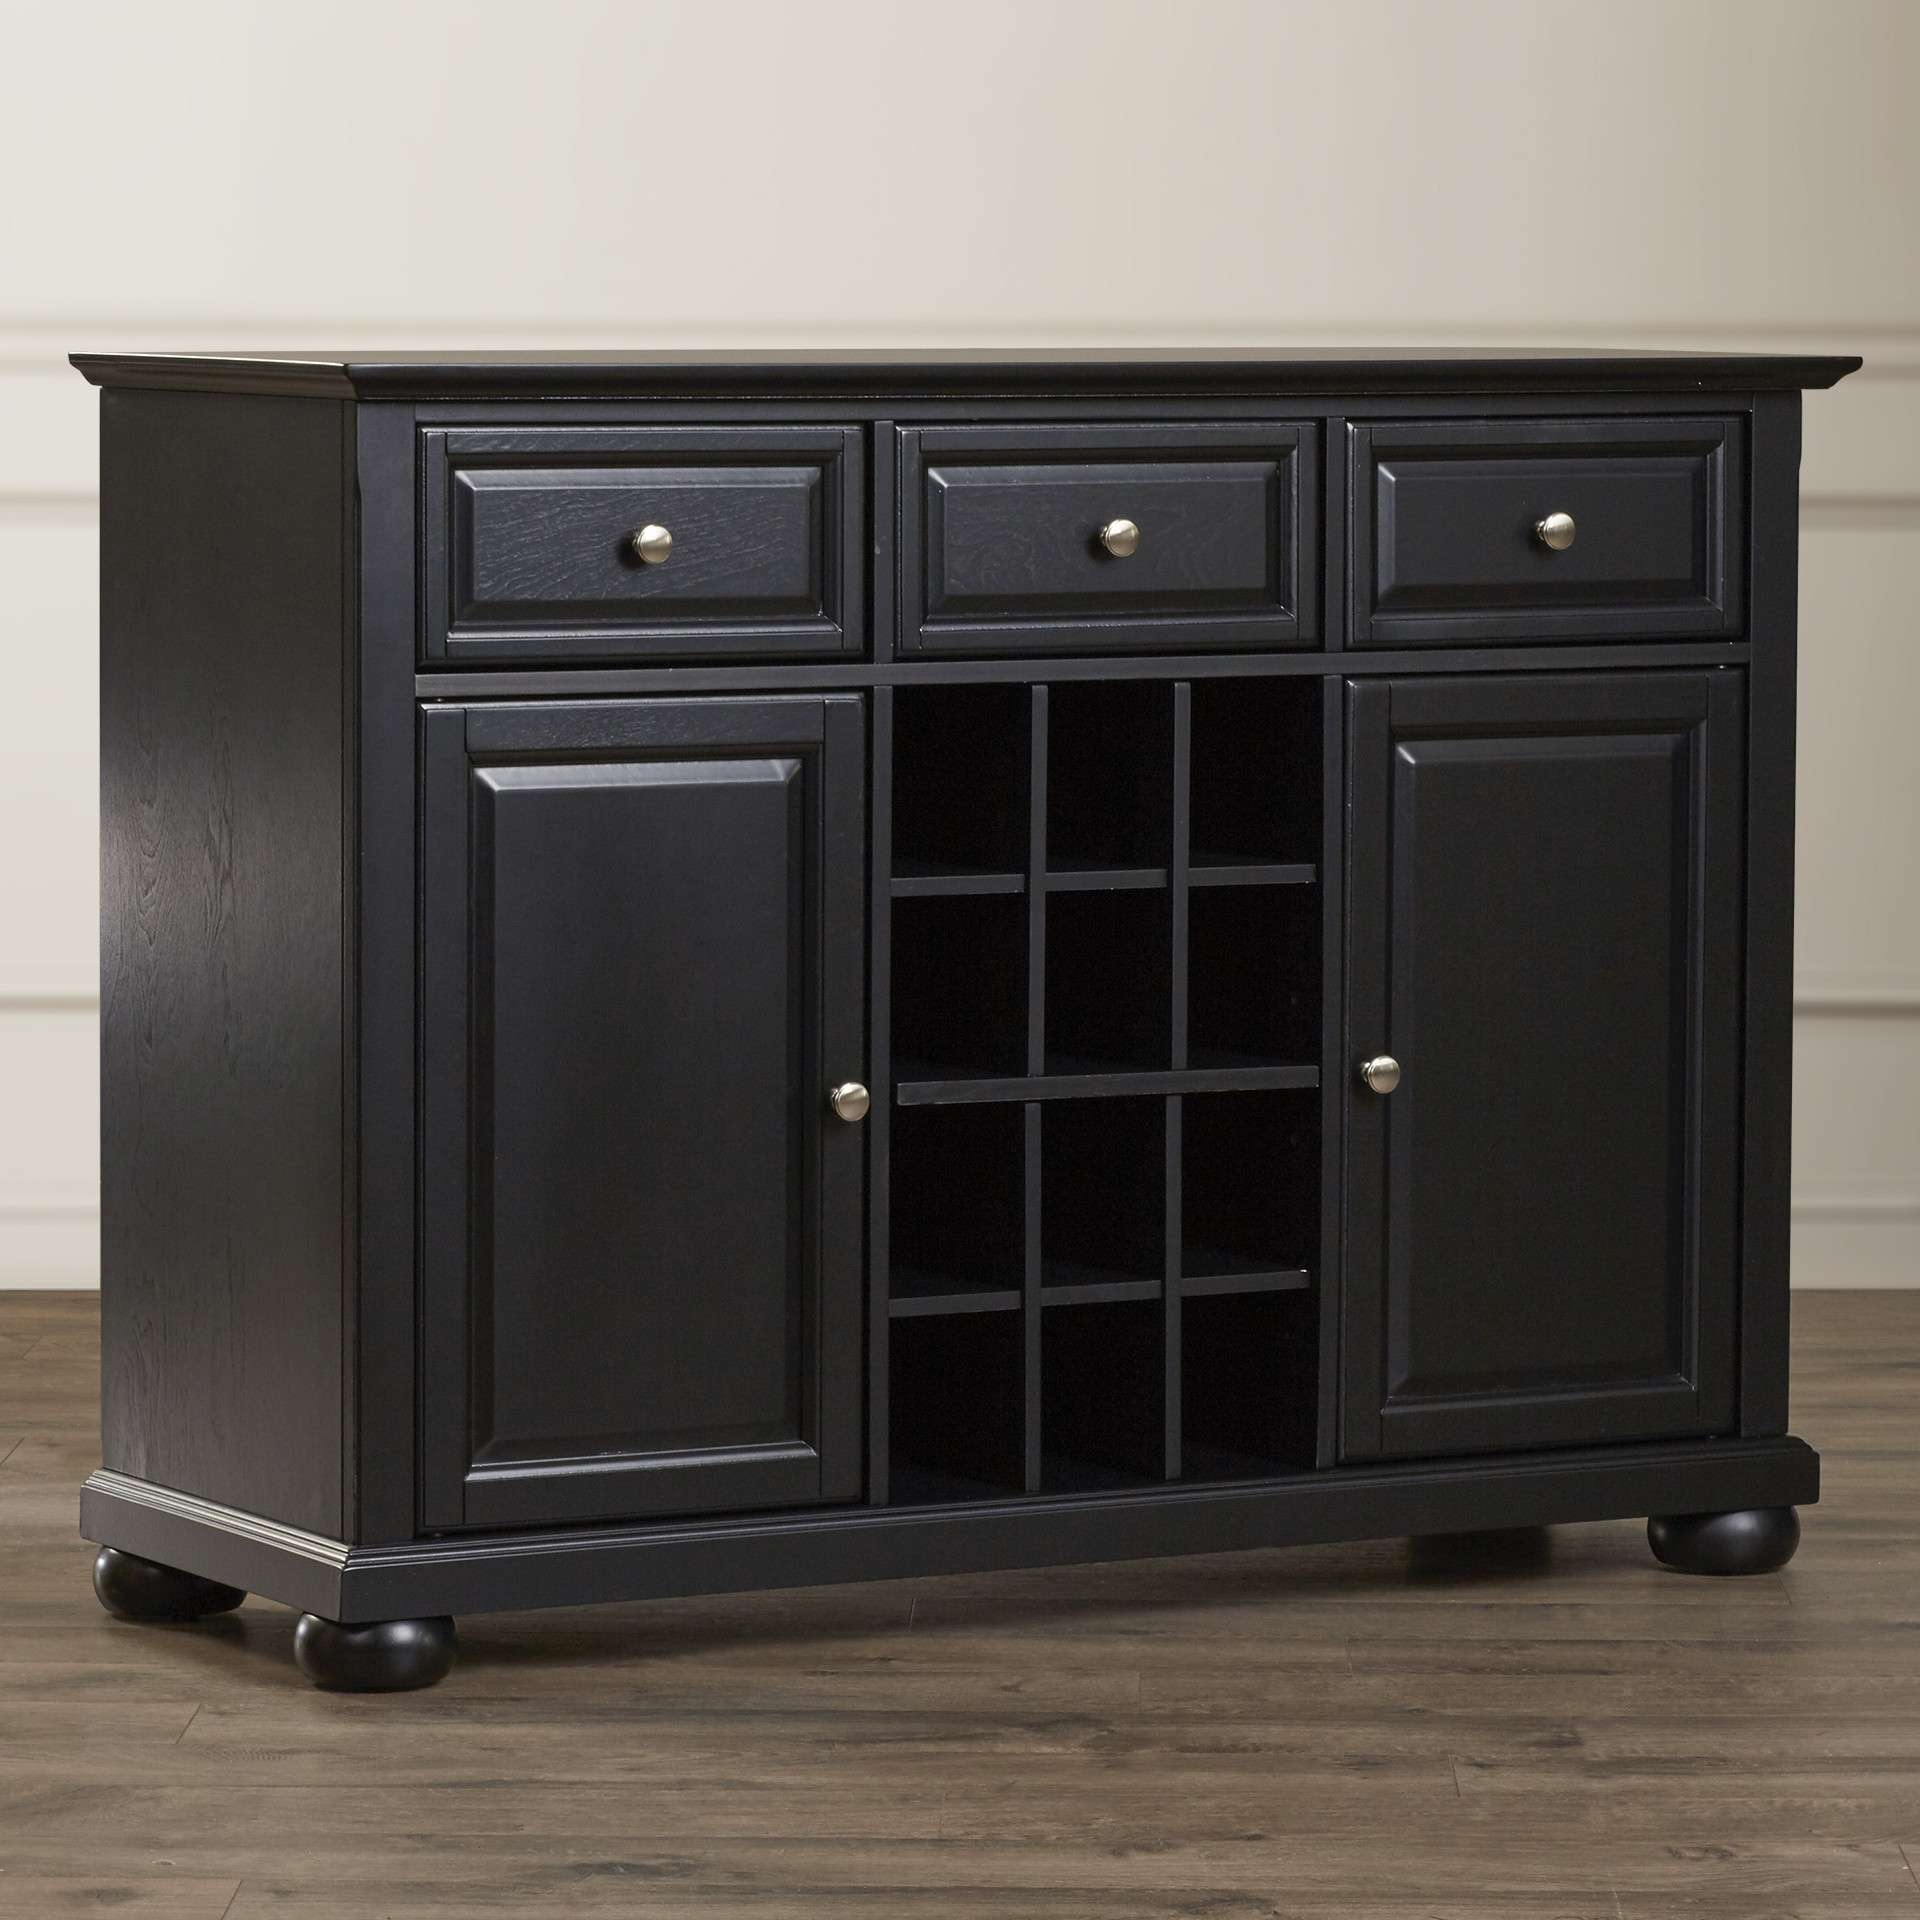 Unique Dining Room Buffets Sideboards – Bjdgjy Intended For Dining Room Buffets Sideboards (View 20 of 20)